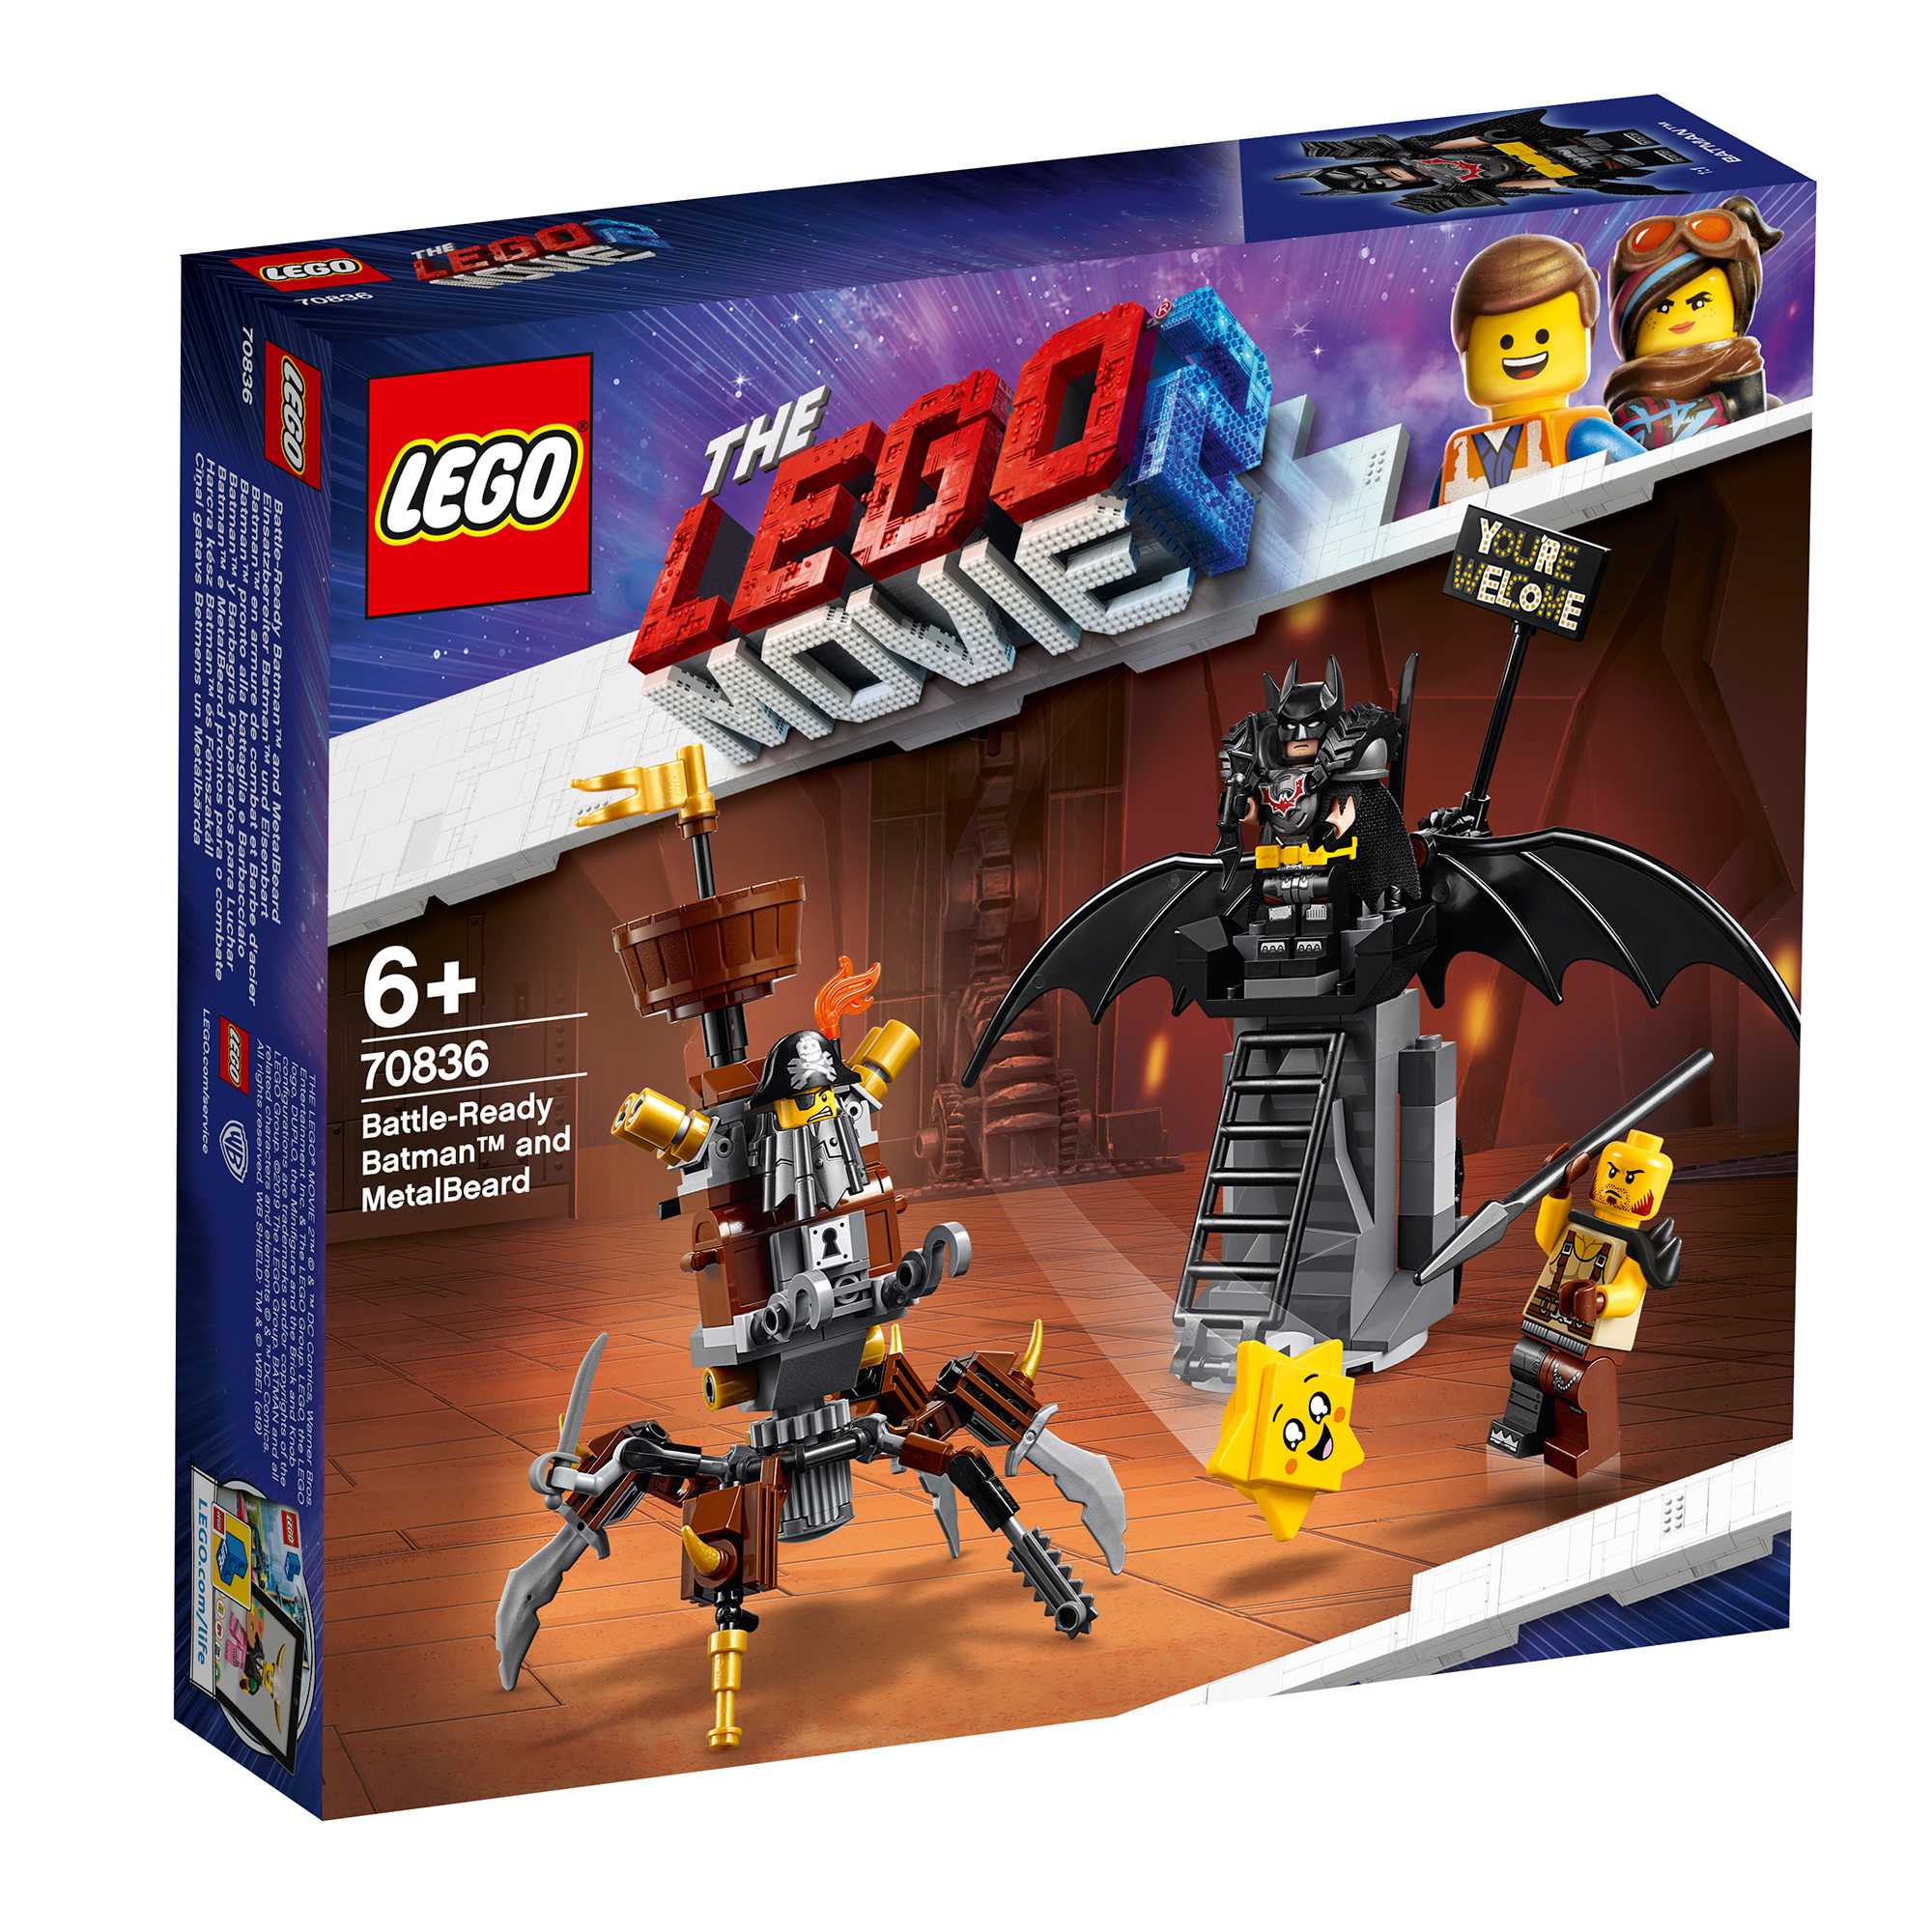 Picture of LEGO Movie 2 Battle-Ready Batman & MetalBeard 70836